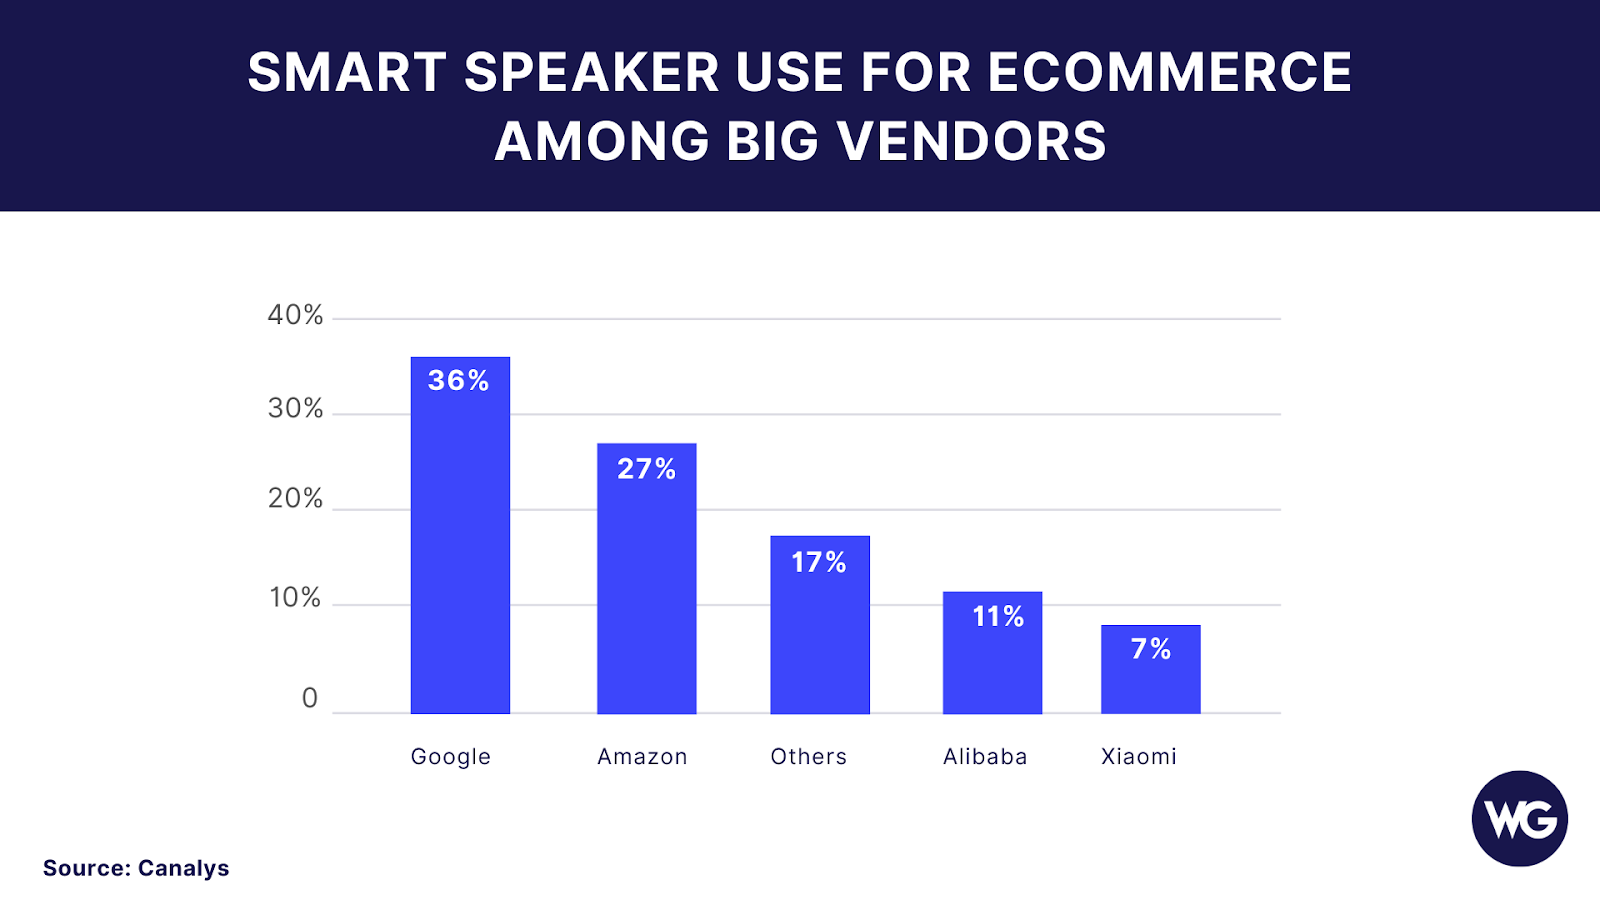 Graphic about smart speaker use for ecommerce among big vendors